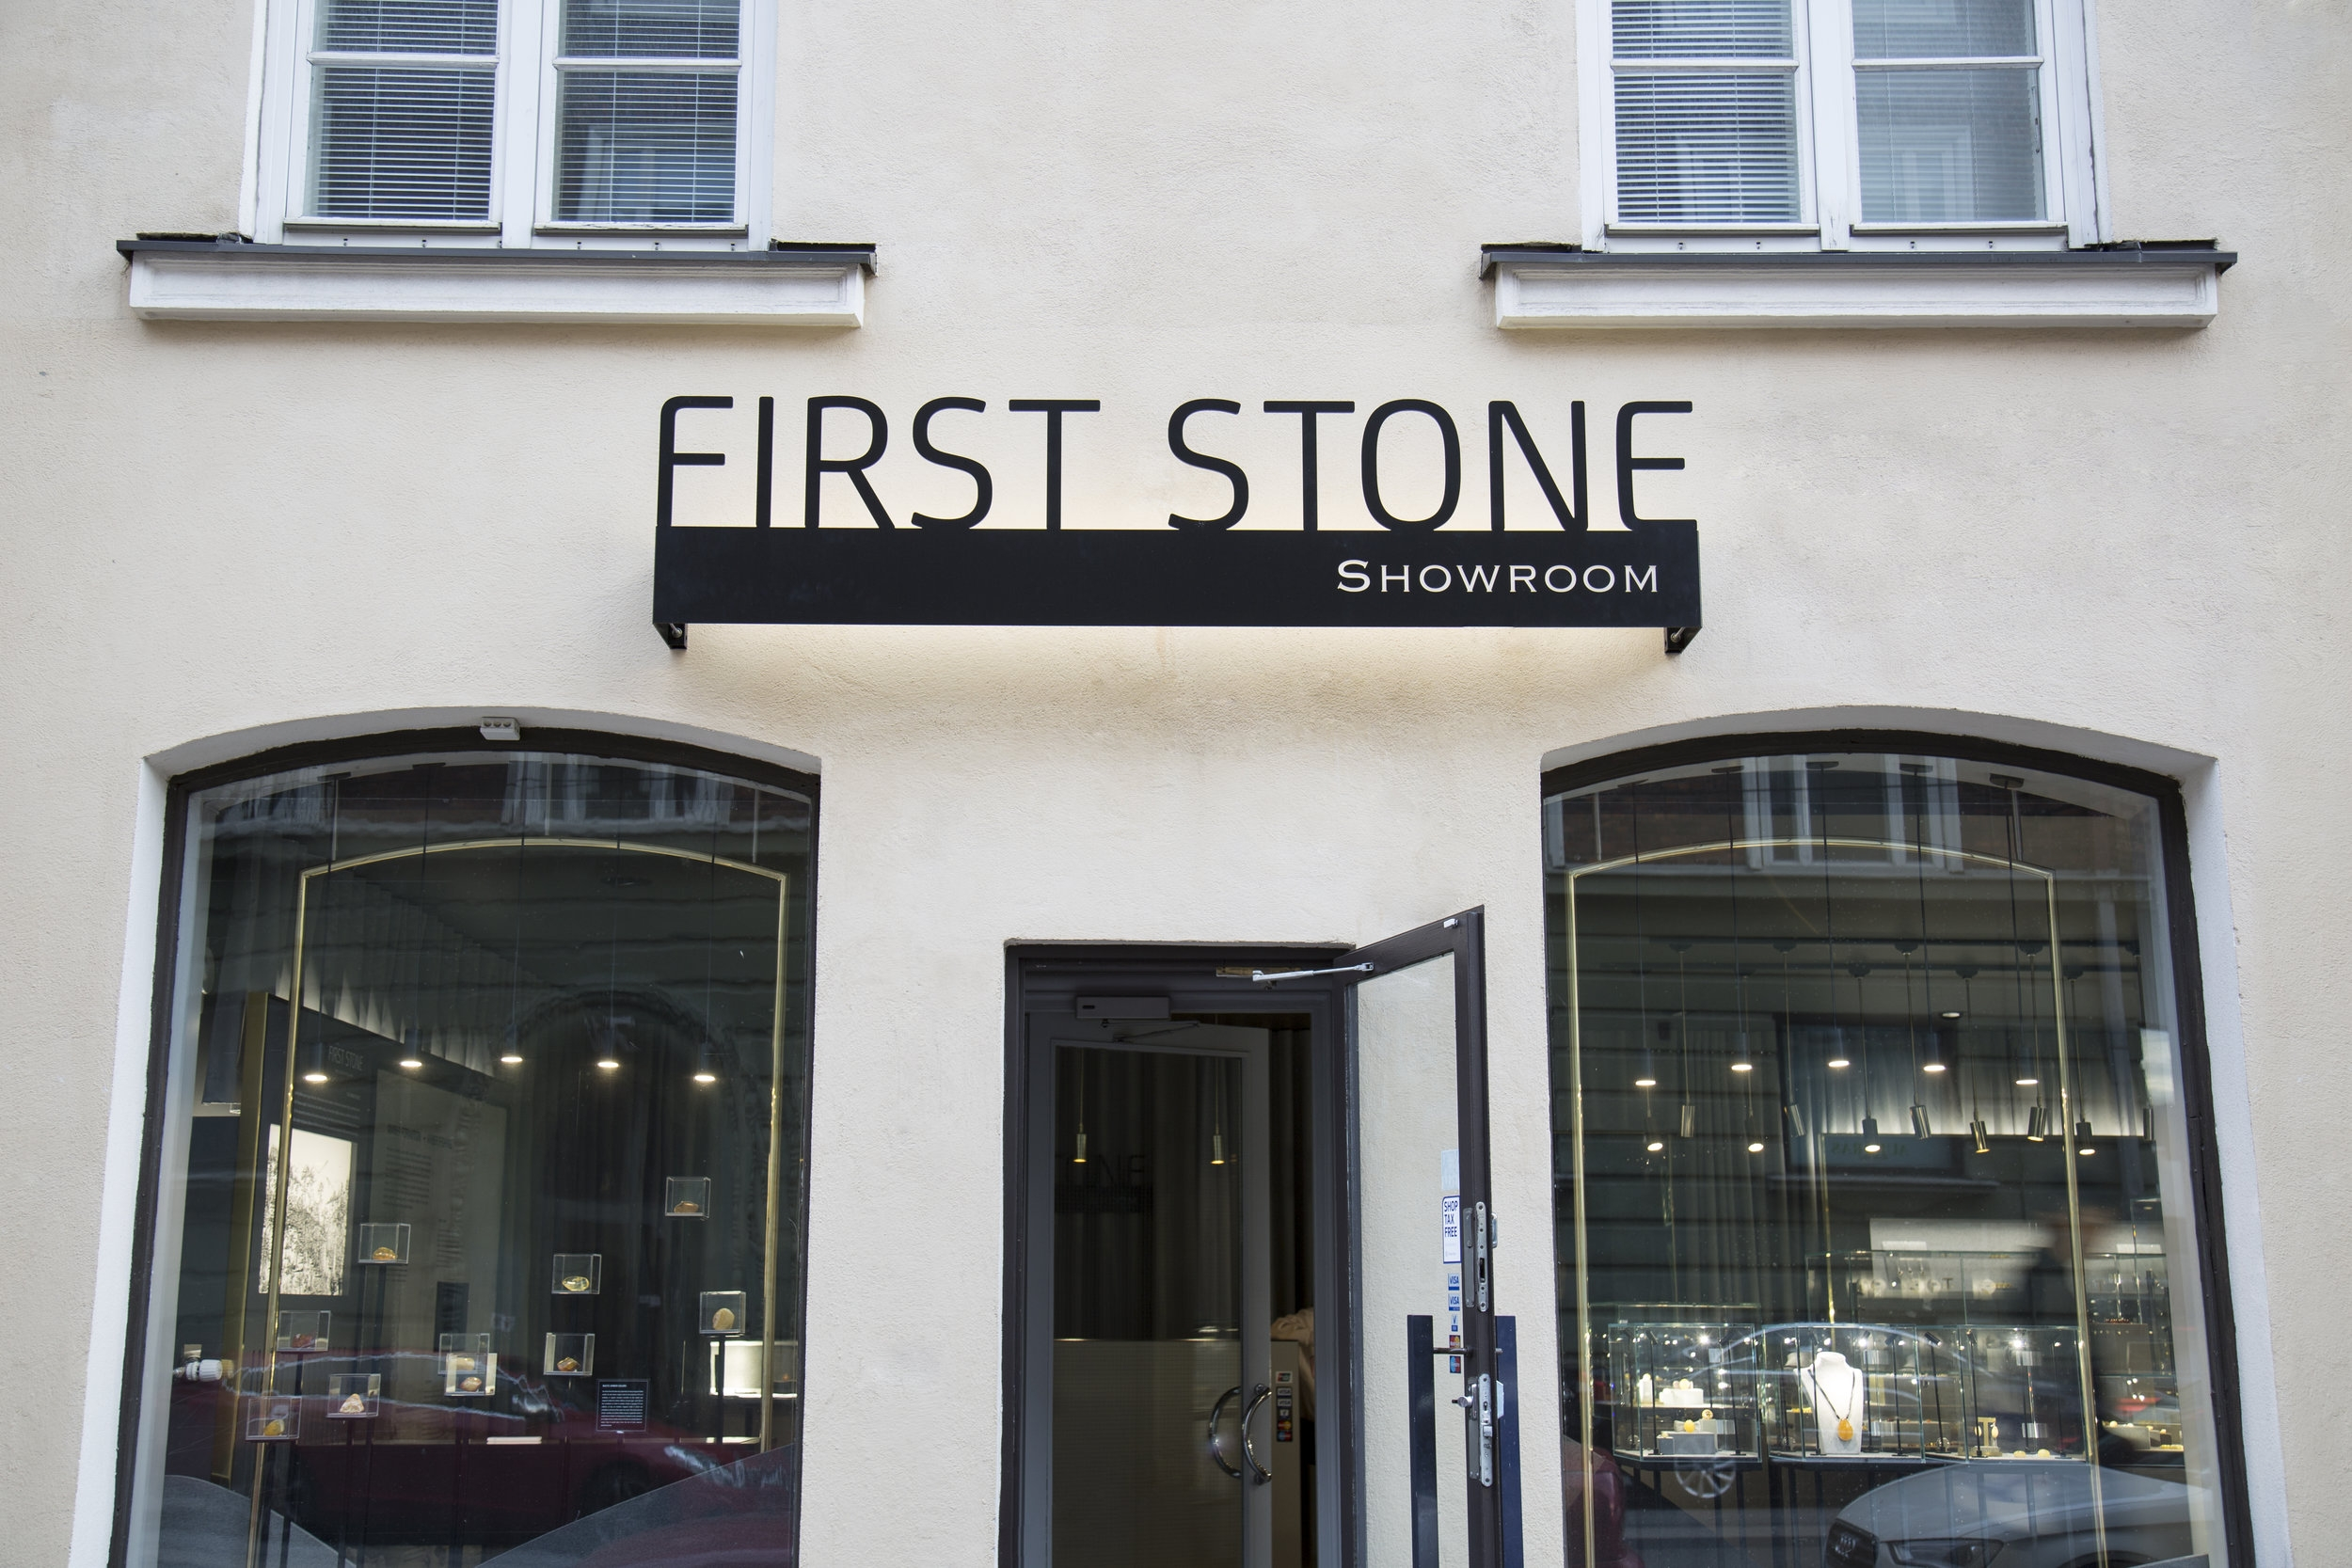 First Stone Showroom